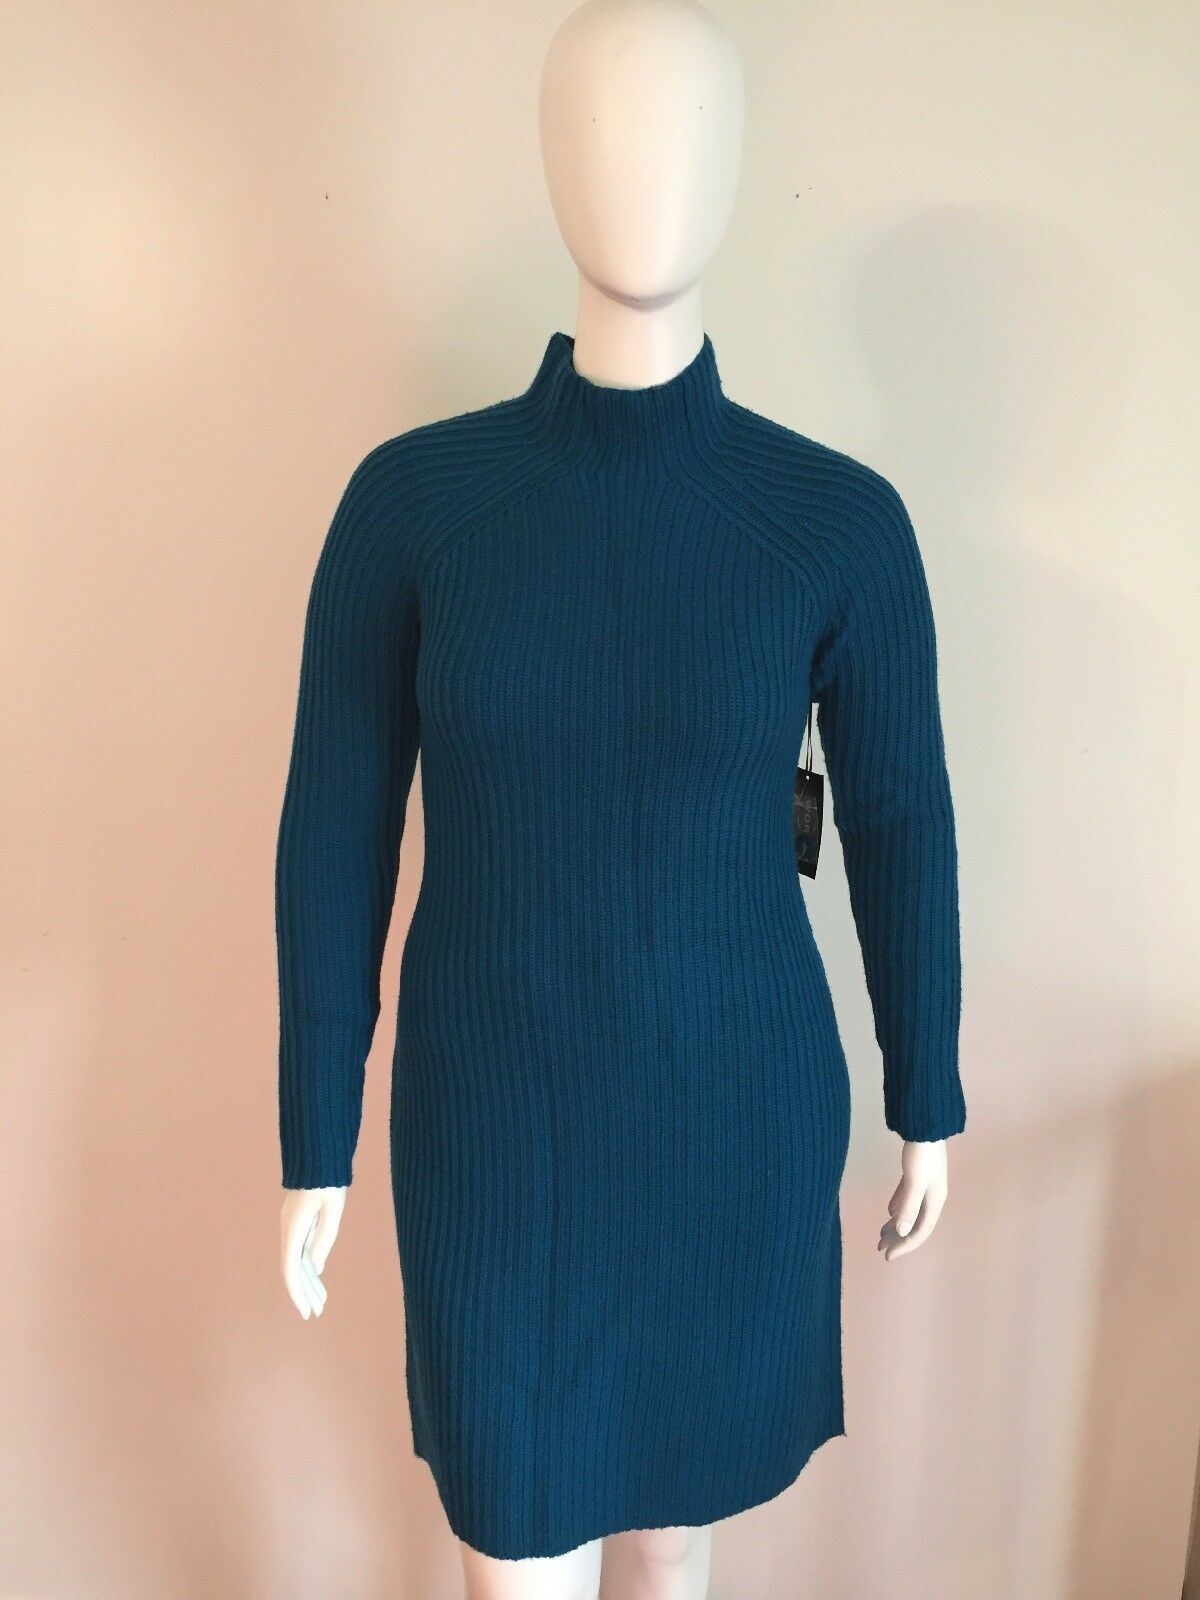 NWT Worth New York Sweater Dress Größe M